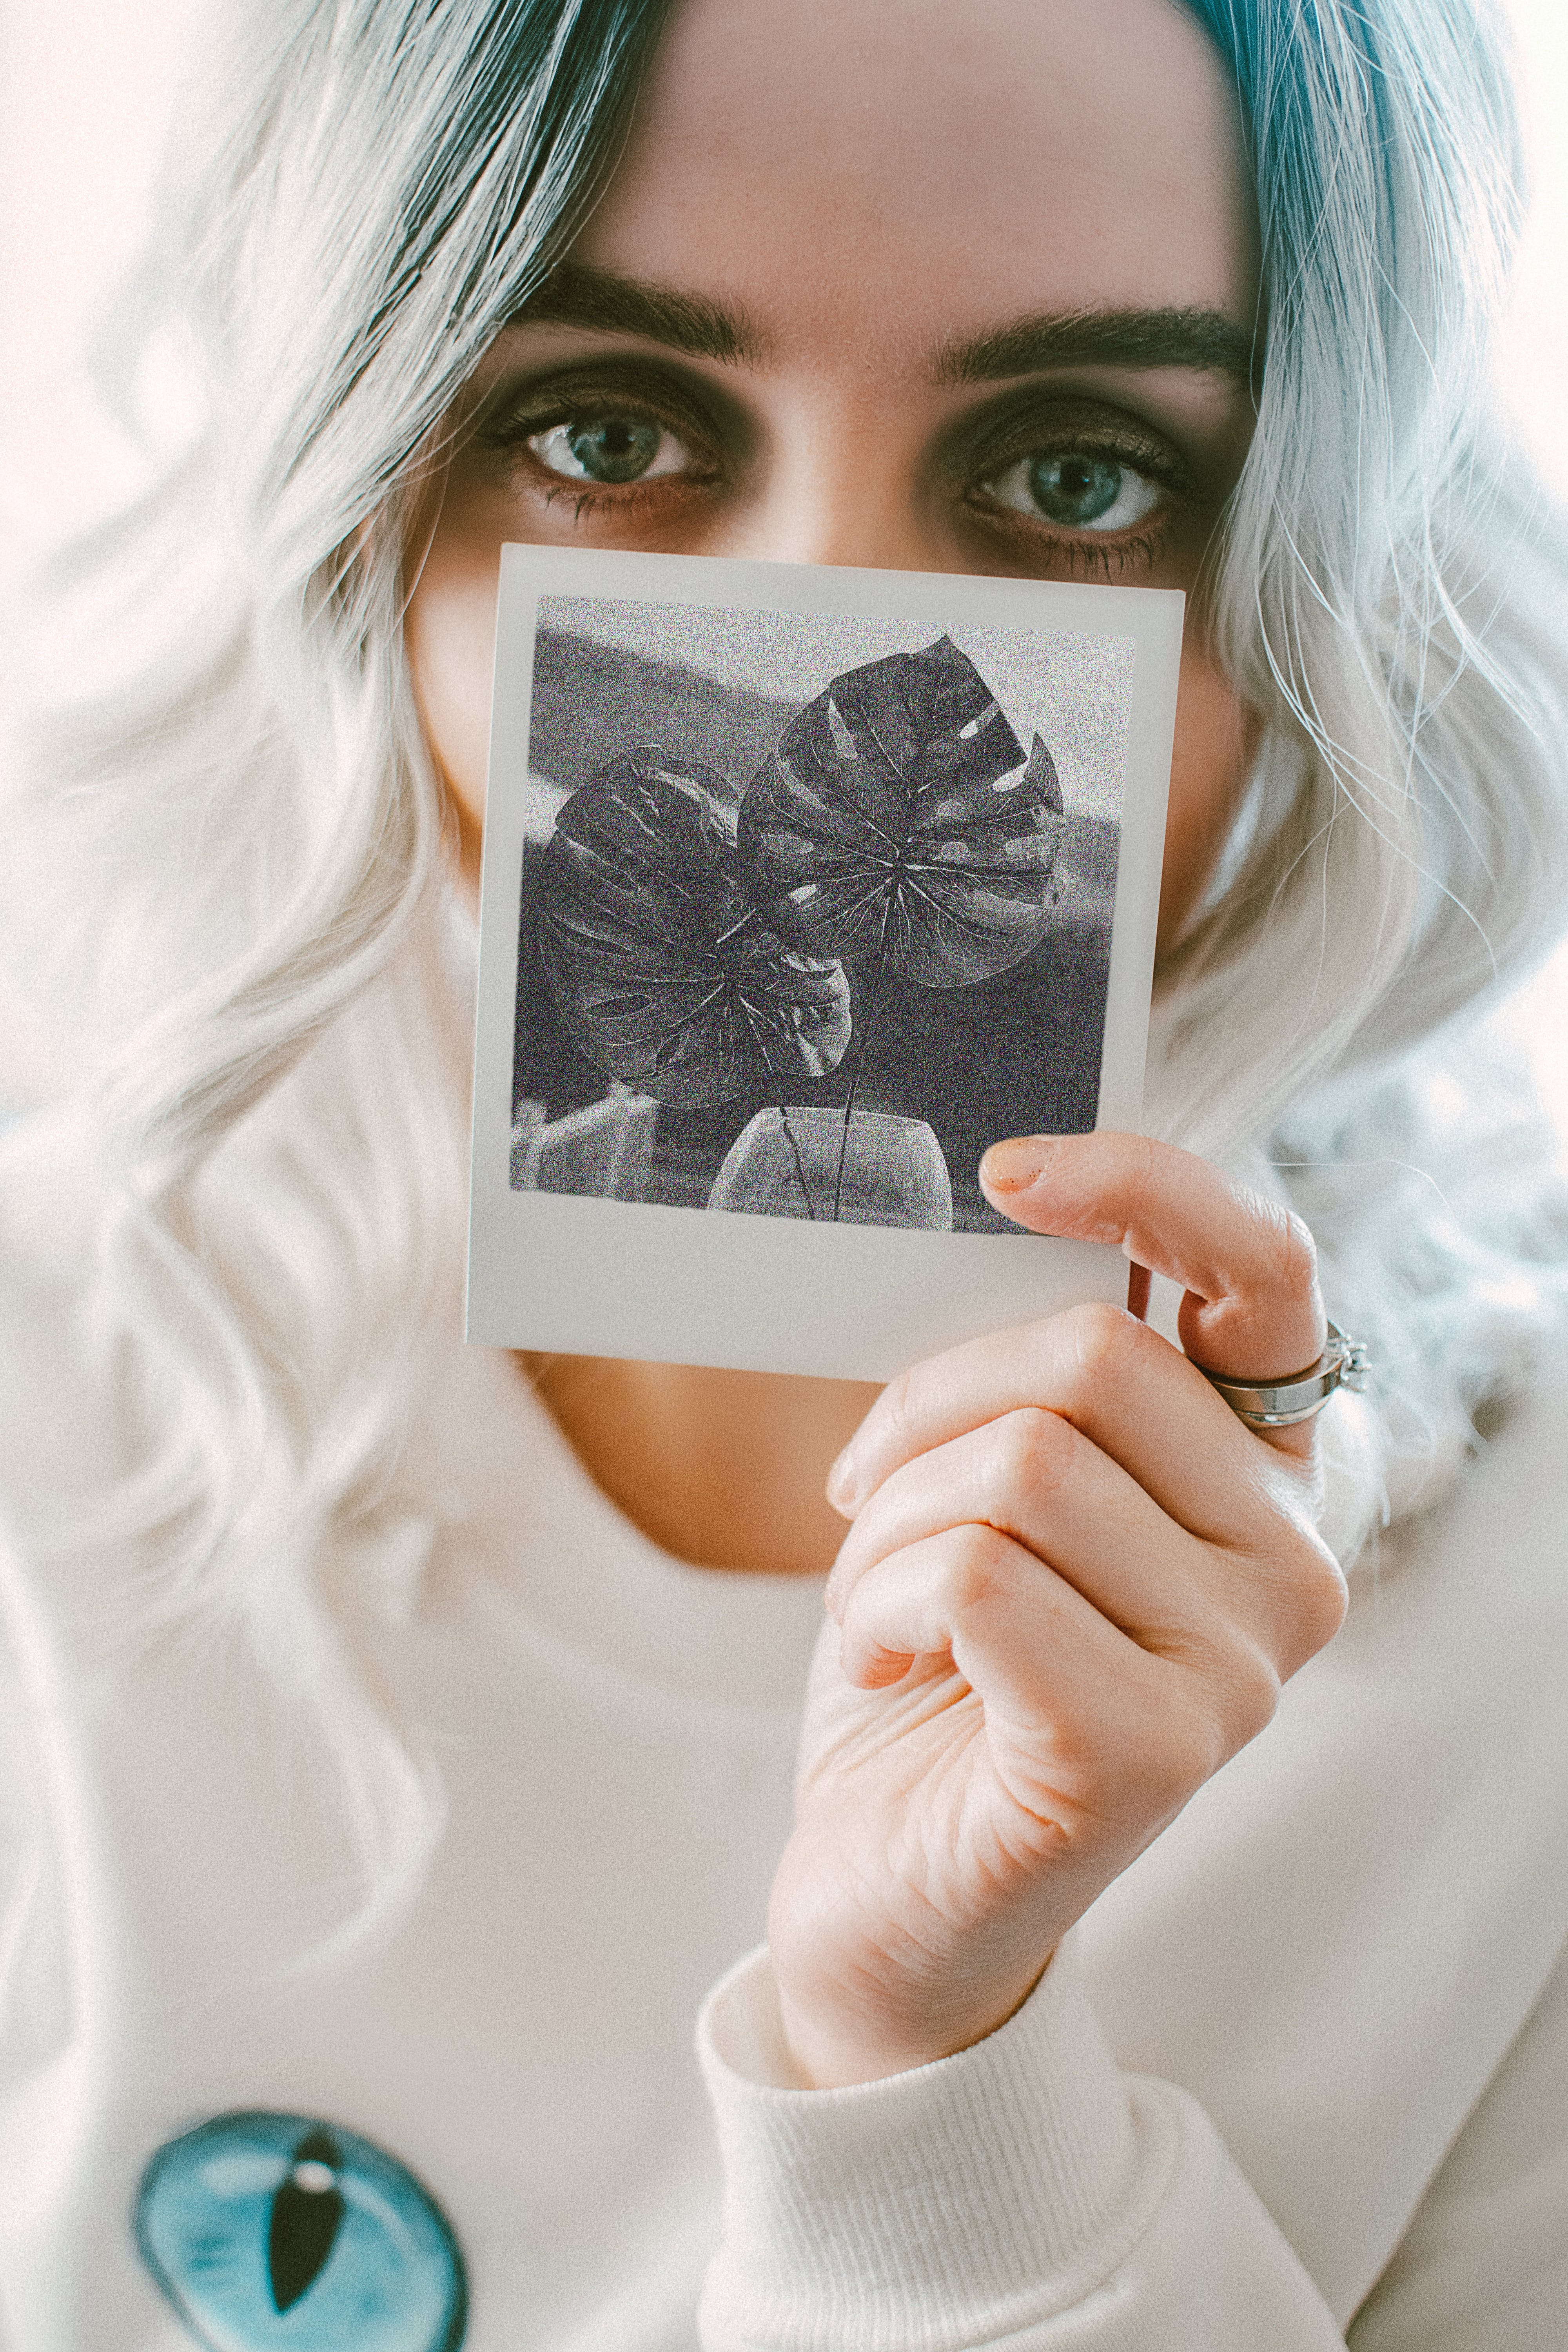 Woman Holding Photo of Leaves